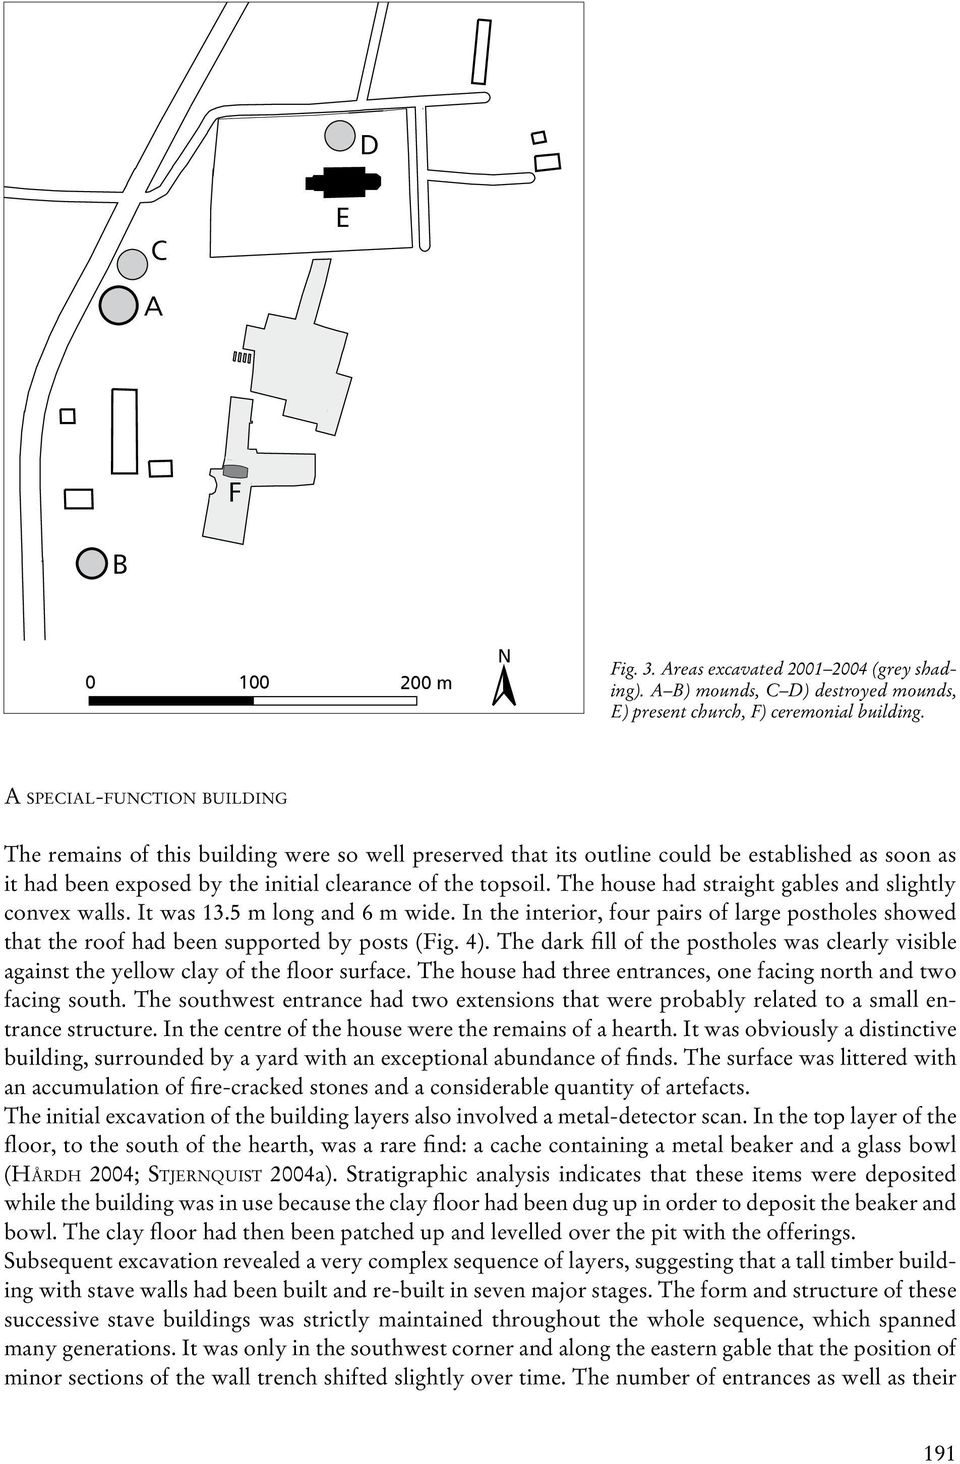 The house had straight gables and slightly convex walls. It was 13.5 m long and 6 m wide. In the interior, four pairs of large postholes showed that the roof had been supported by posts (Fig. 4).